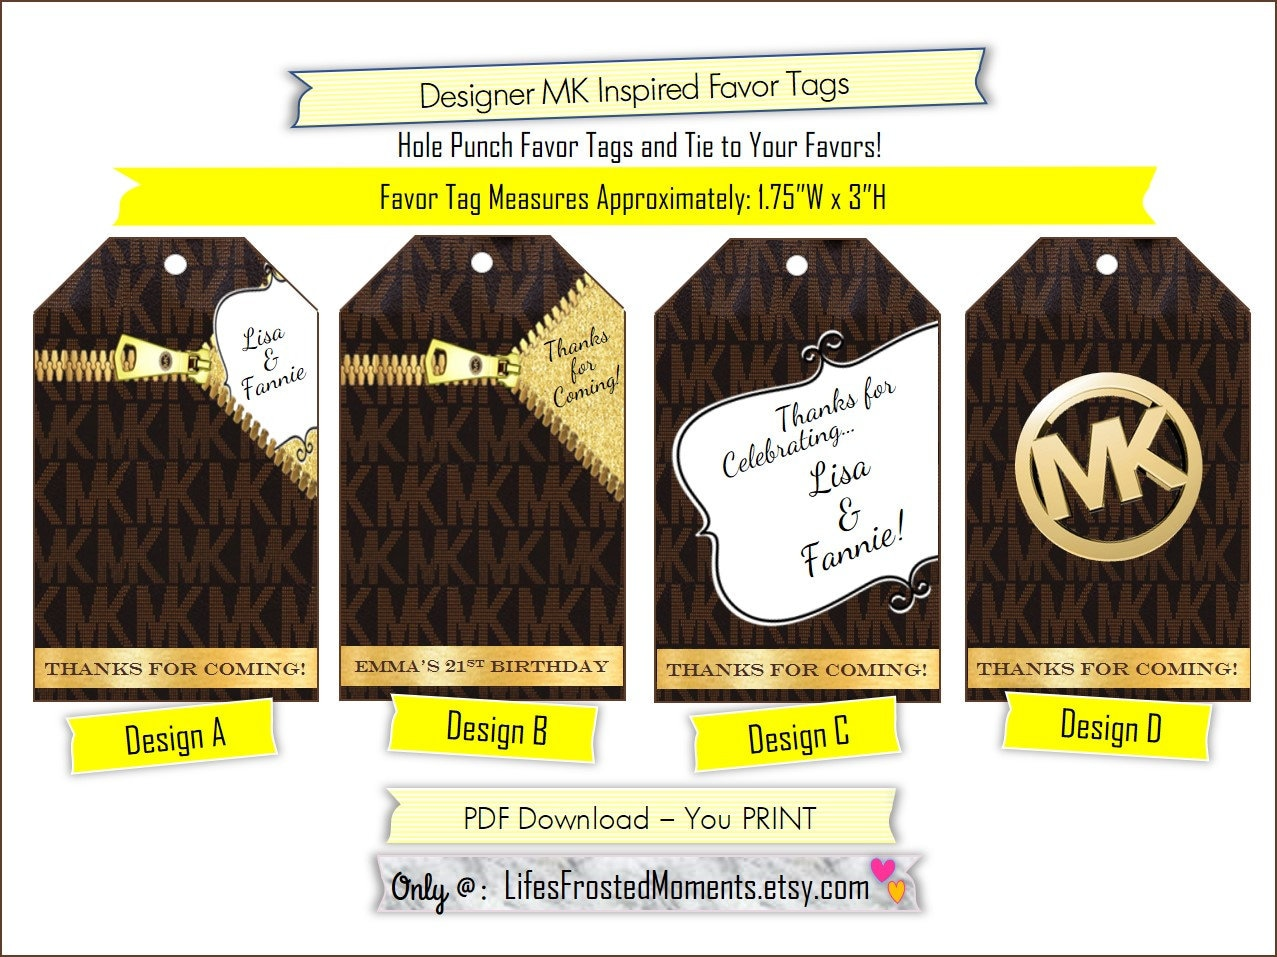 pdf designer fashion mk inspired custom personalized party tag